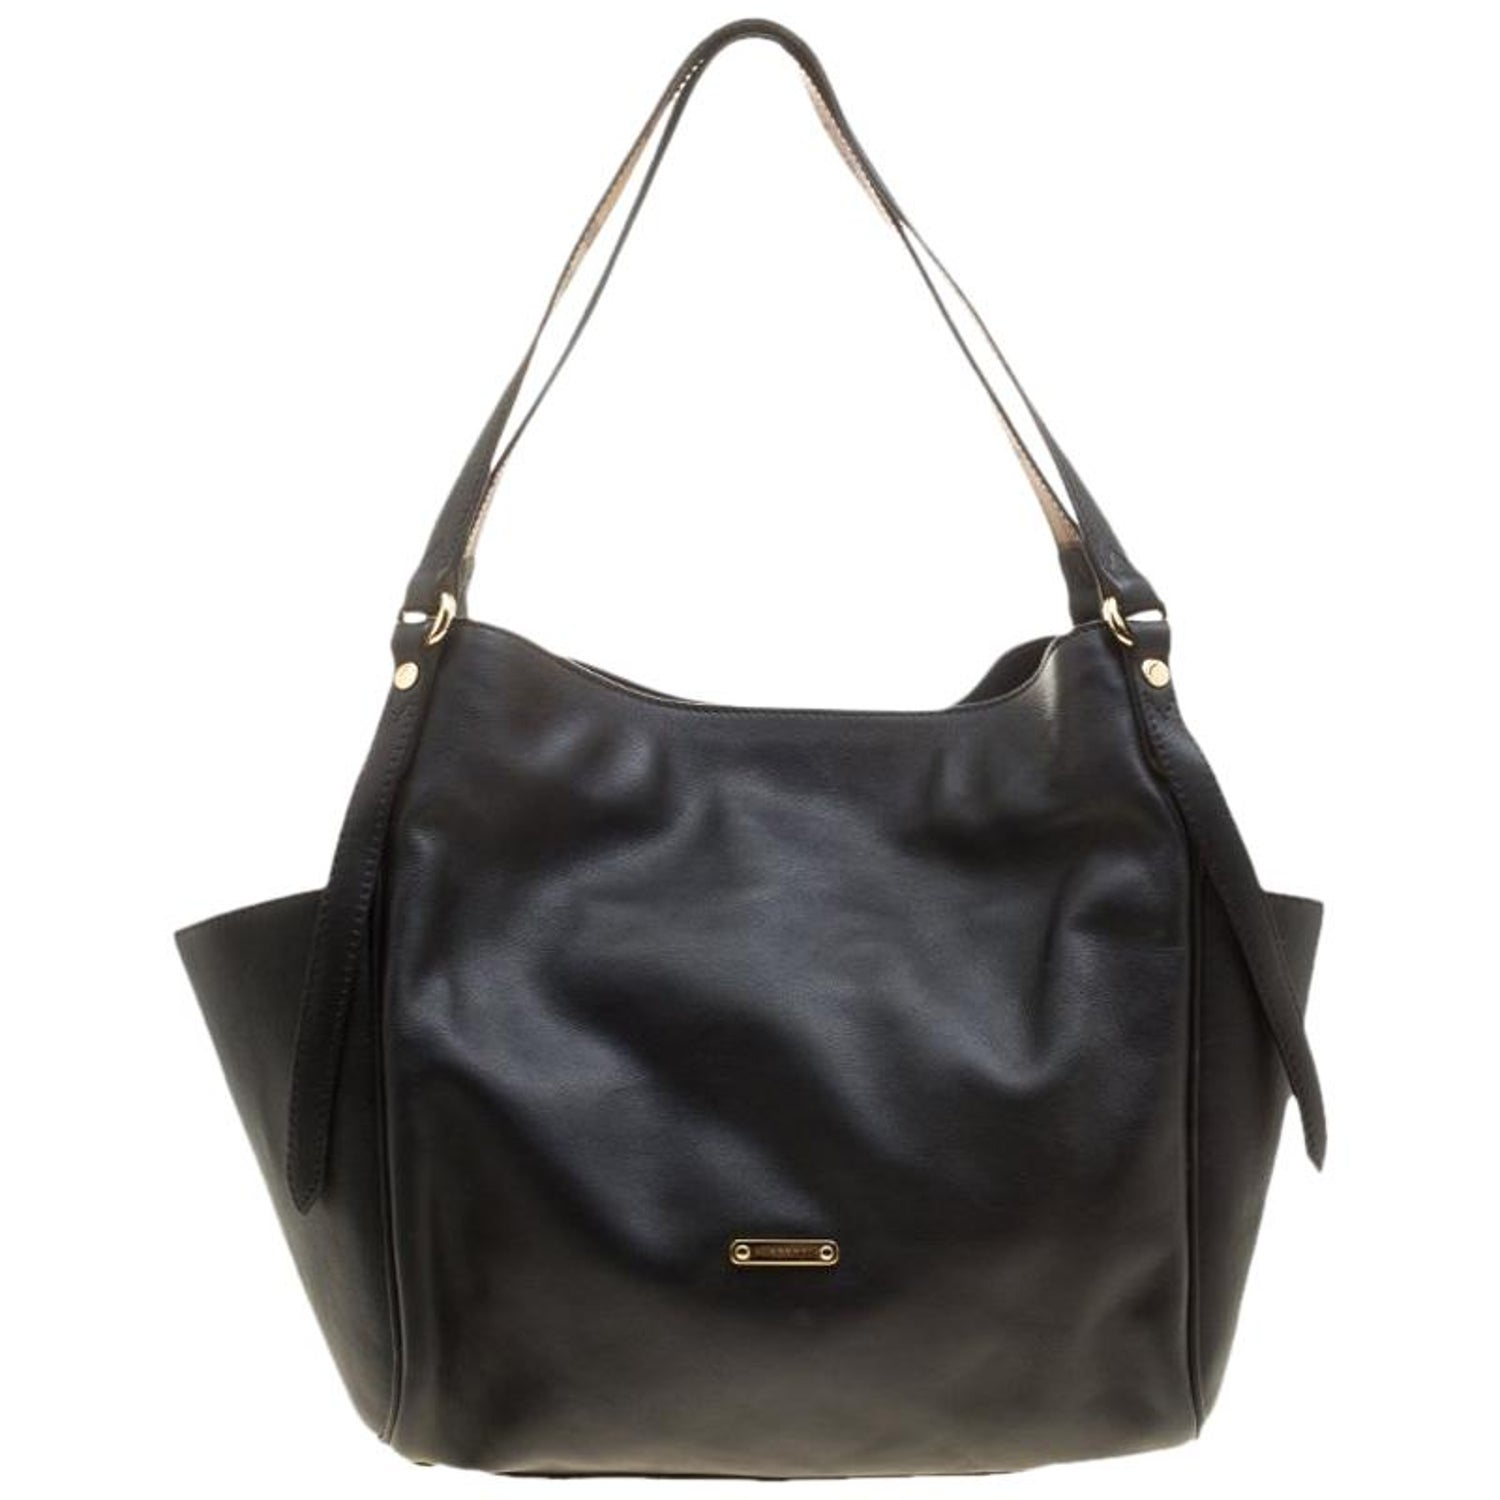 7dc32a5dd36e Burberry Black Leather Small Canterbury Tote For Sale at 1stdibs